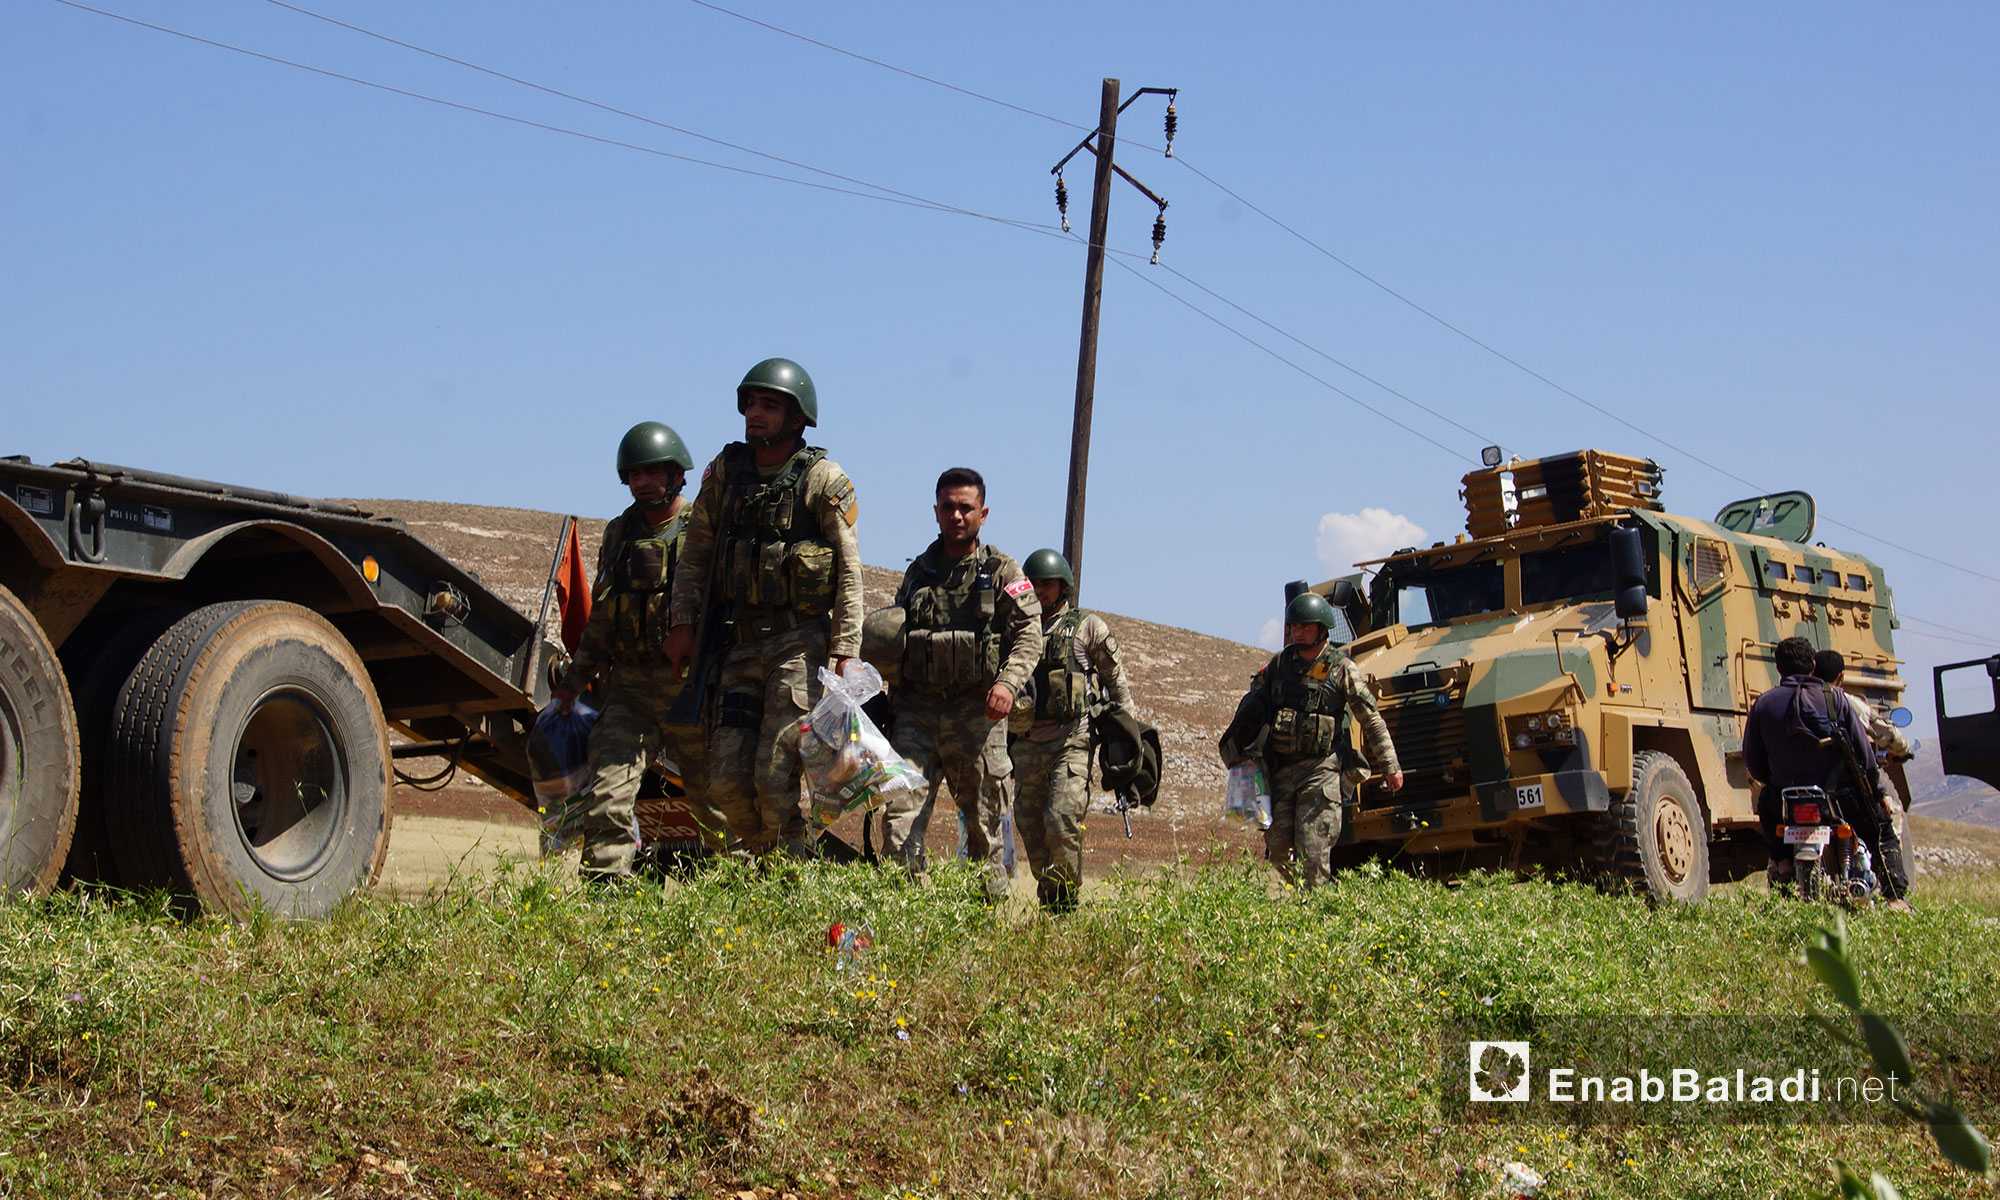 Turkish troops stationed in the village of Sher al-Maghar in Jabal Shashabo, West Hama, May 14, 2018 (Enab Baladi)